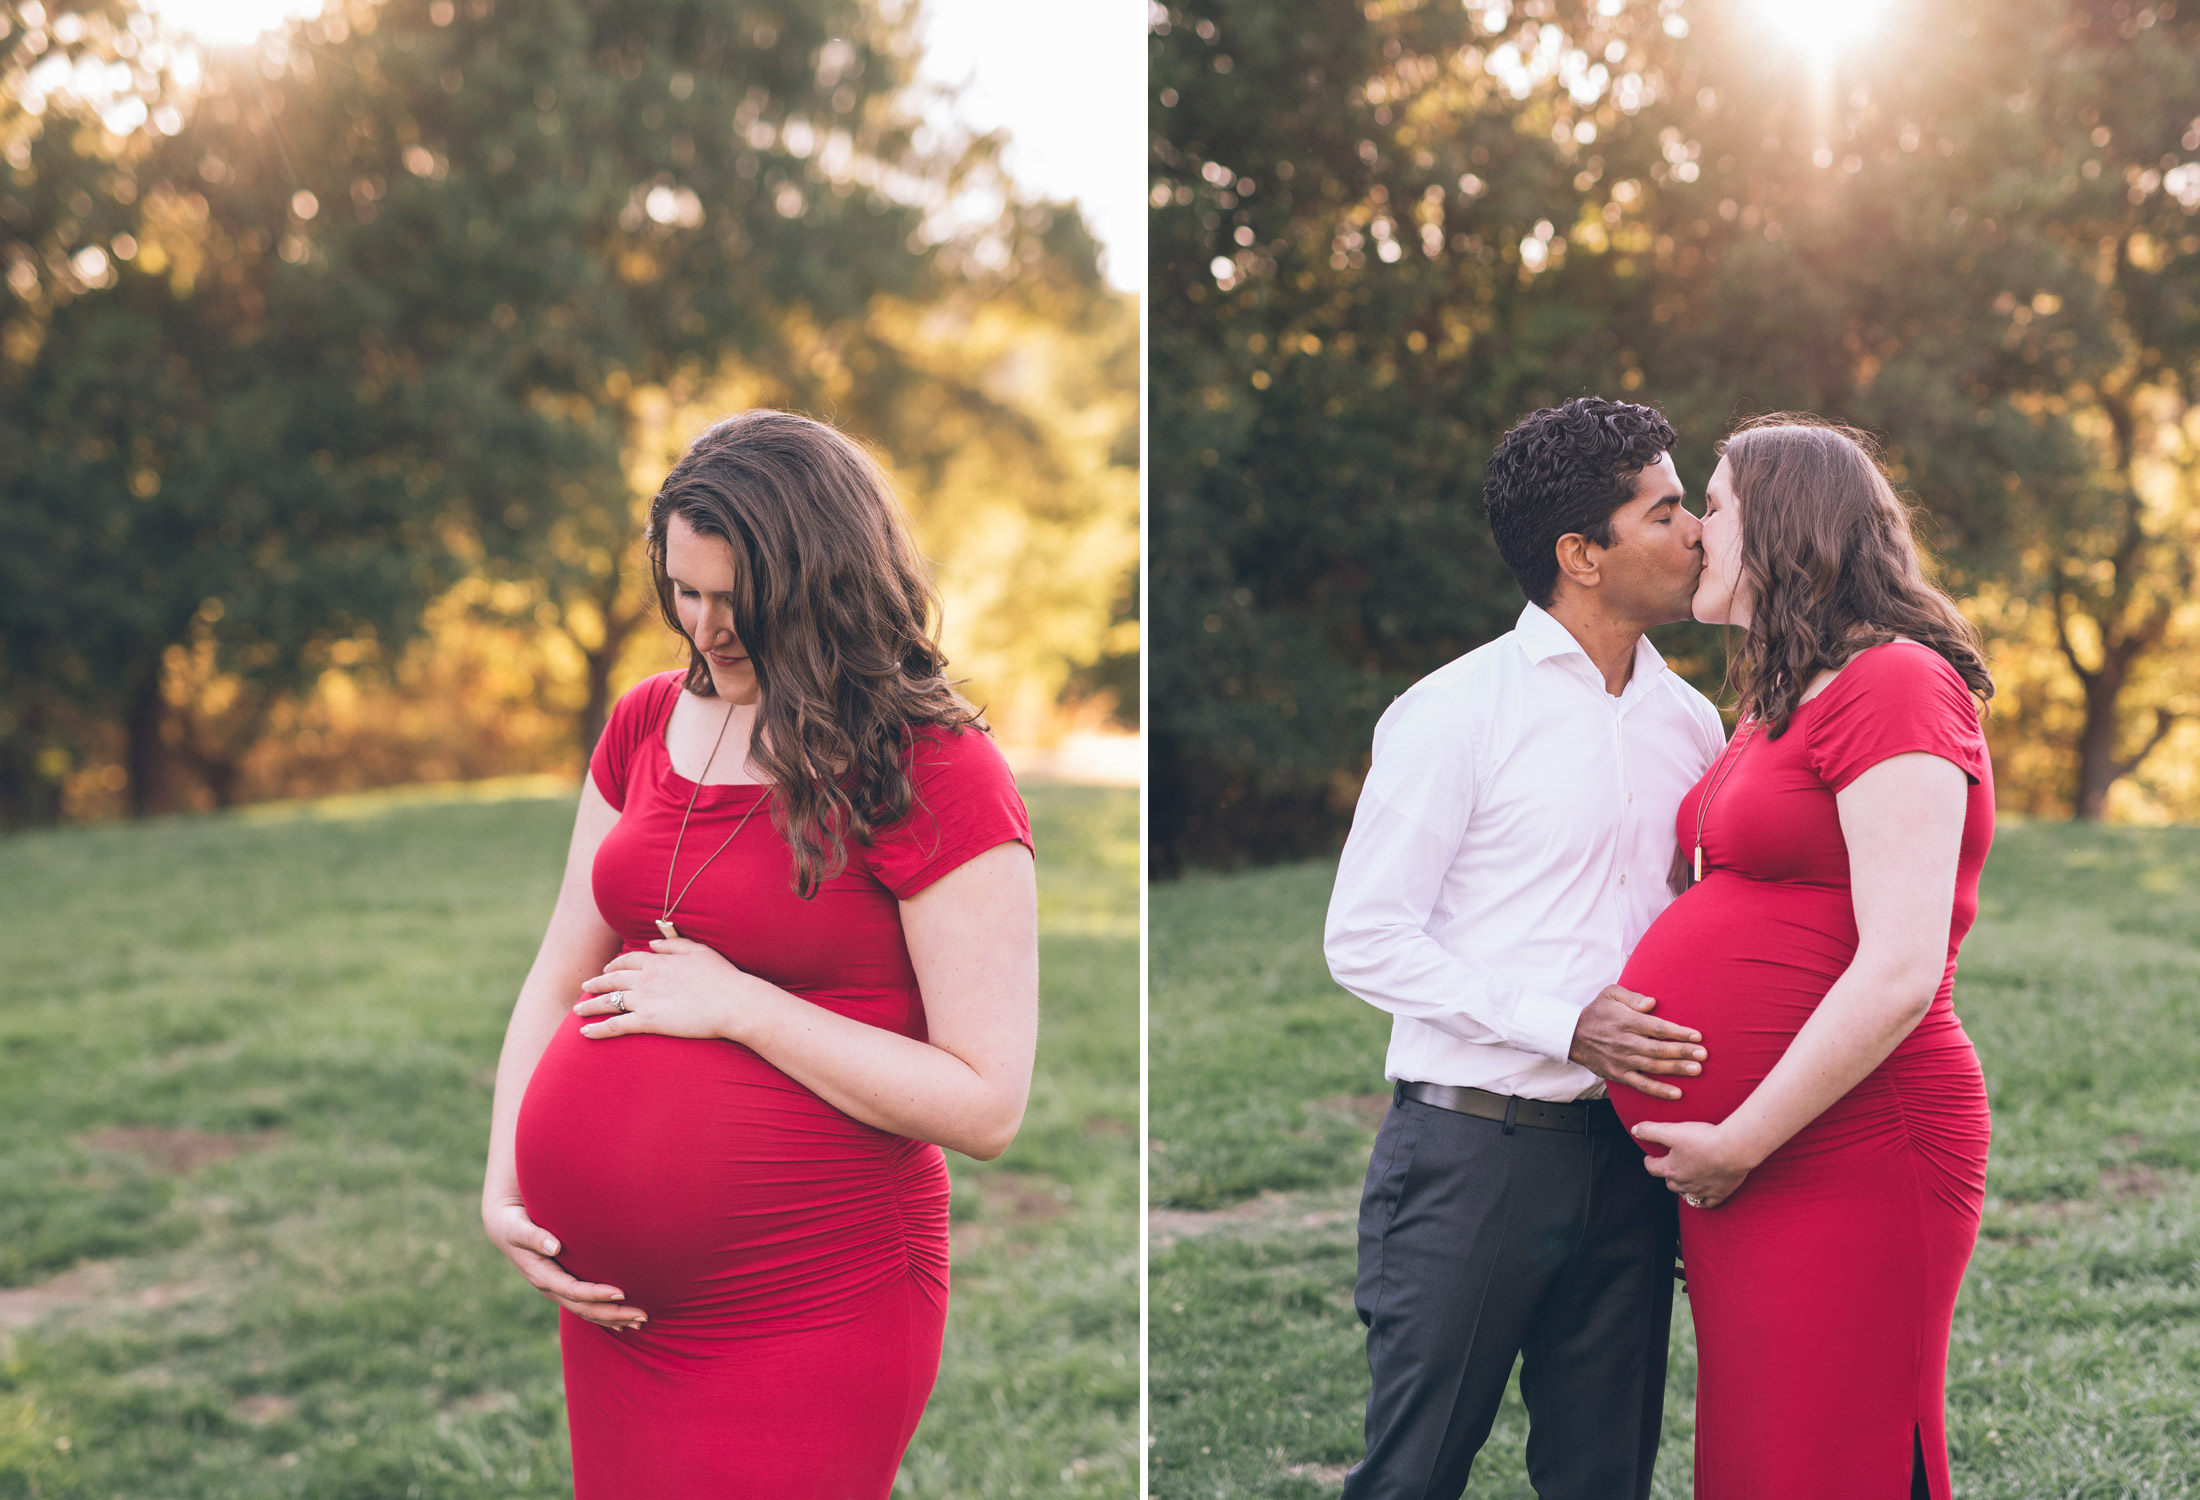 Lafayette Orinda Maternity Newborn Session0007.jpg